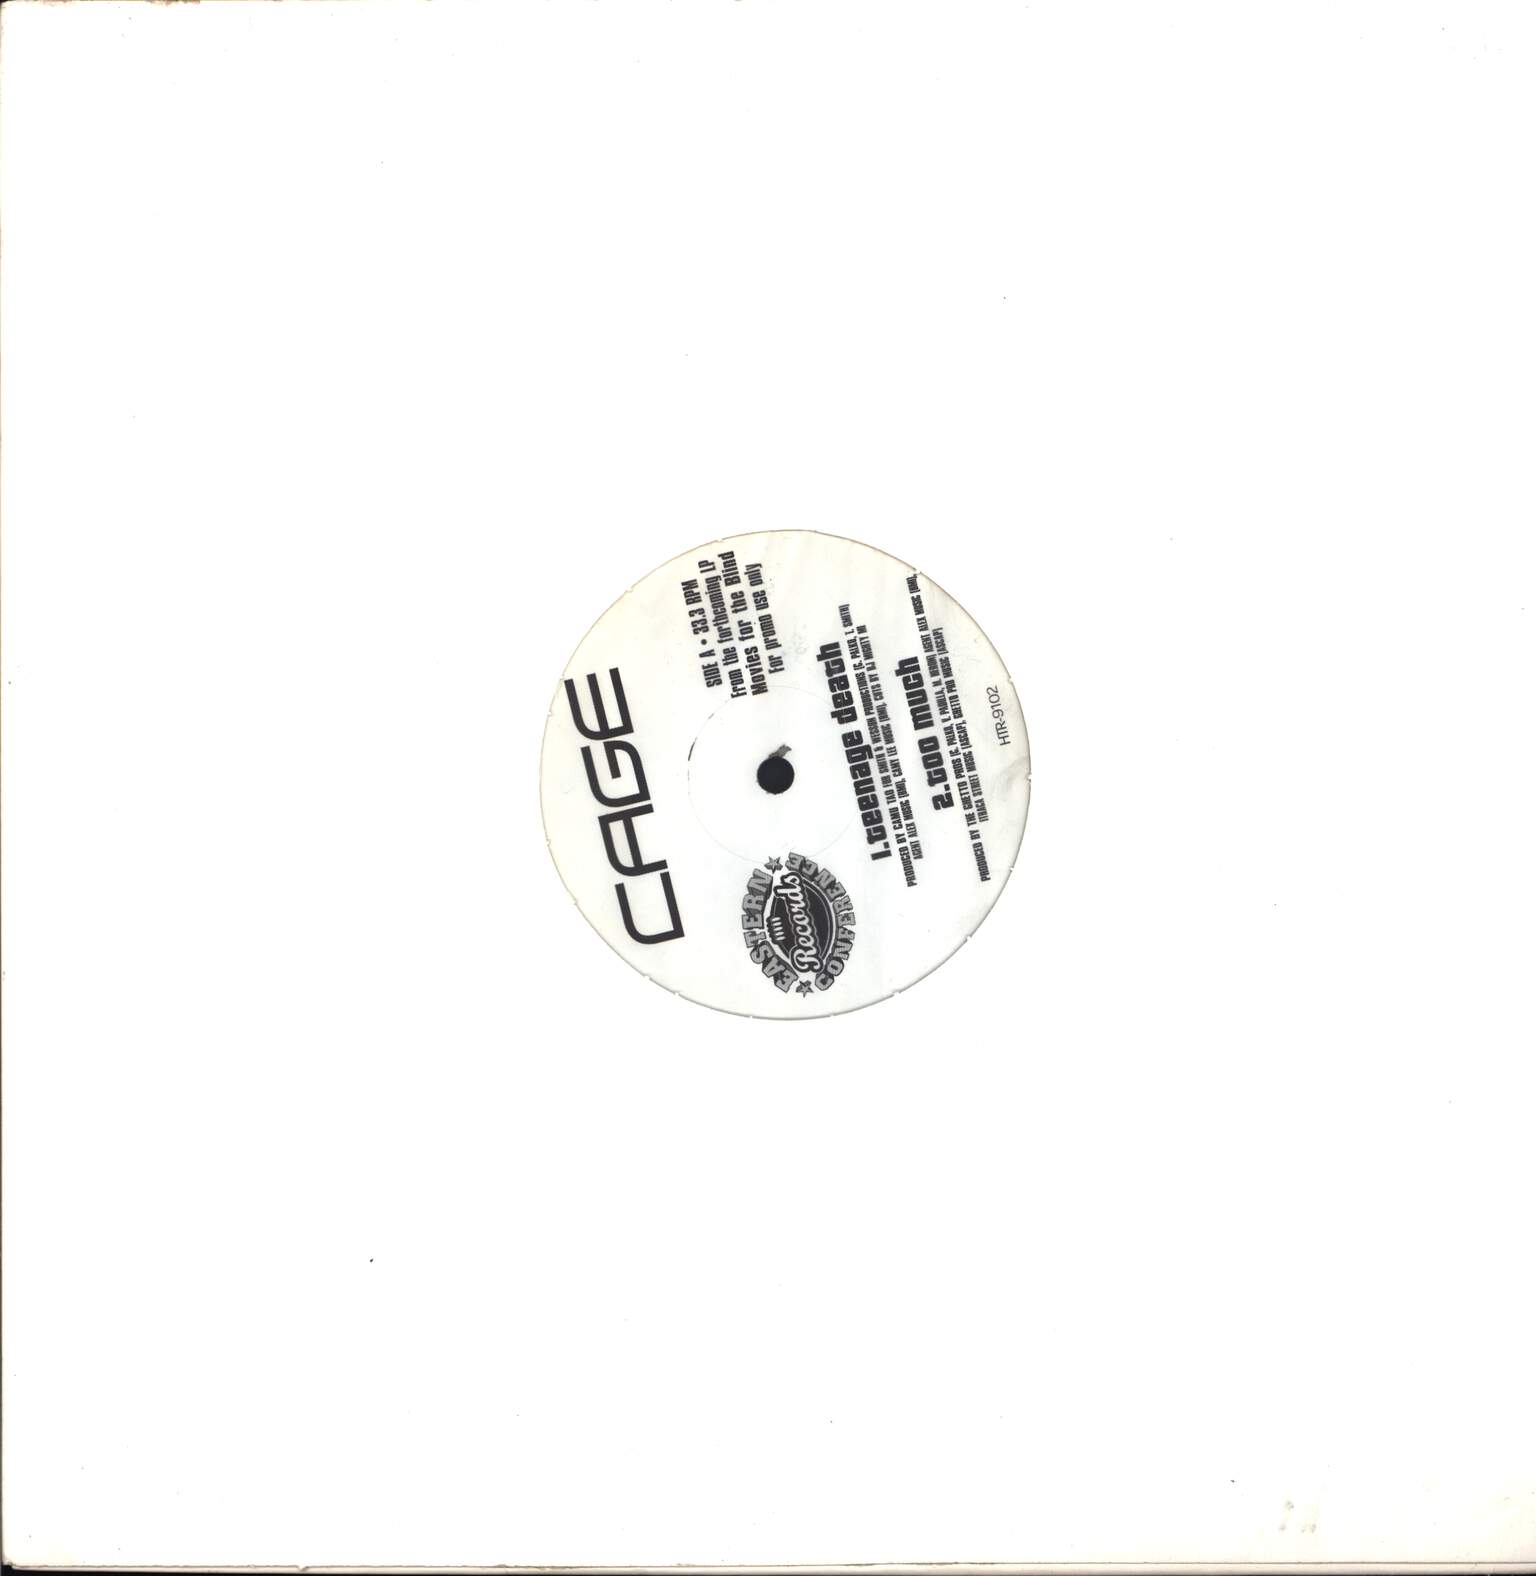 "Cage: Promo LP Sampler, 12"" Maxi Single (Vinyl)"